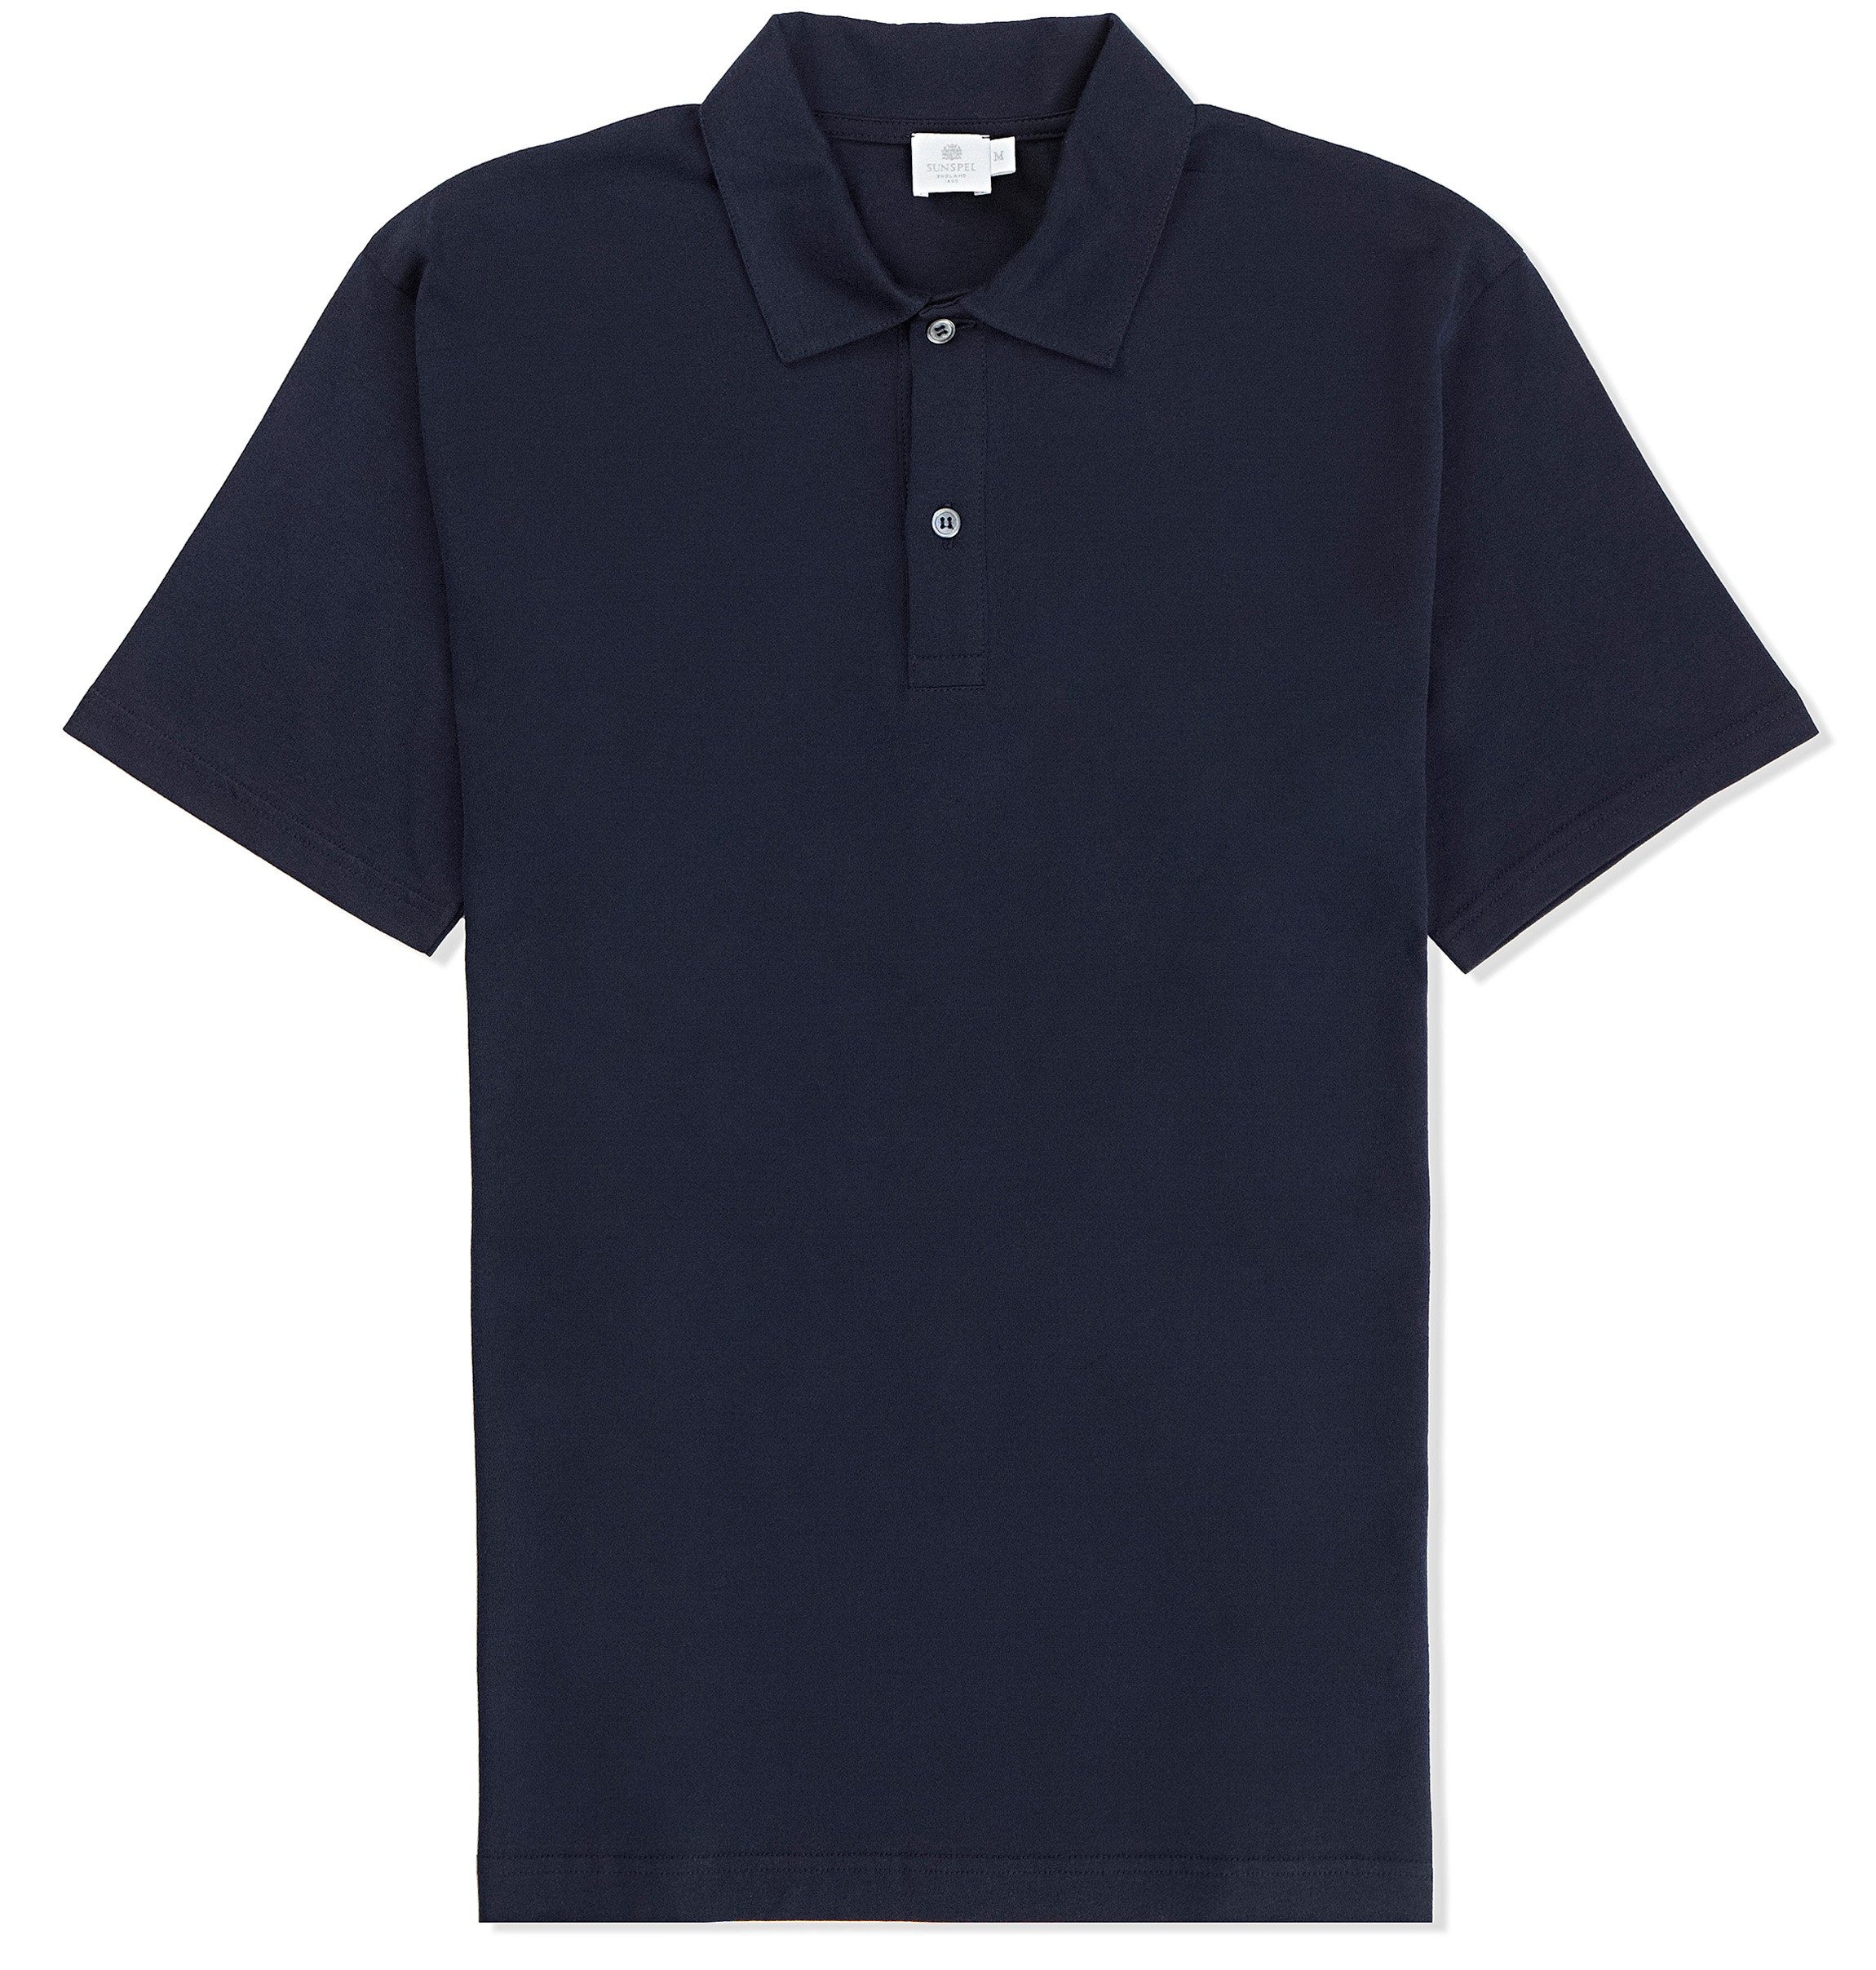 sunspel jersey polo shirt in blue for men navy lyst